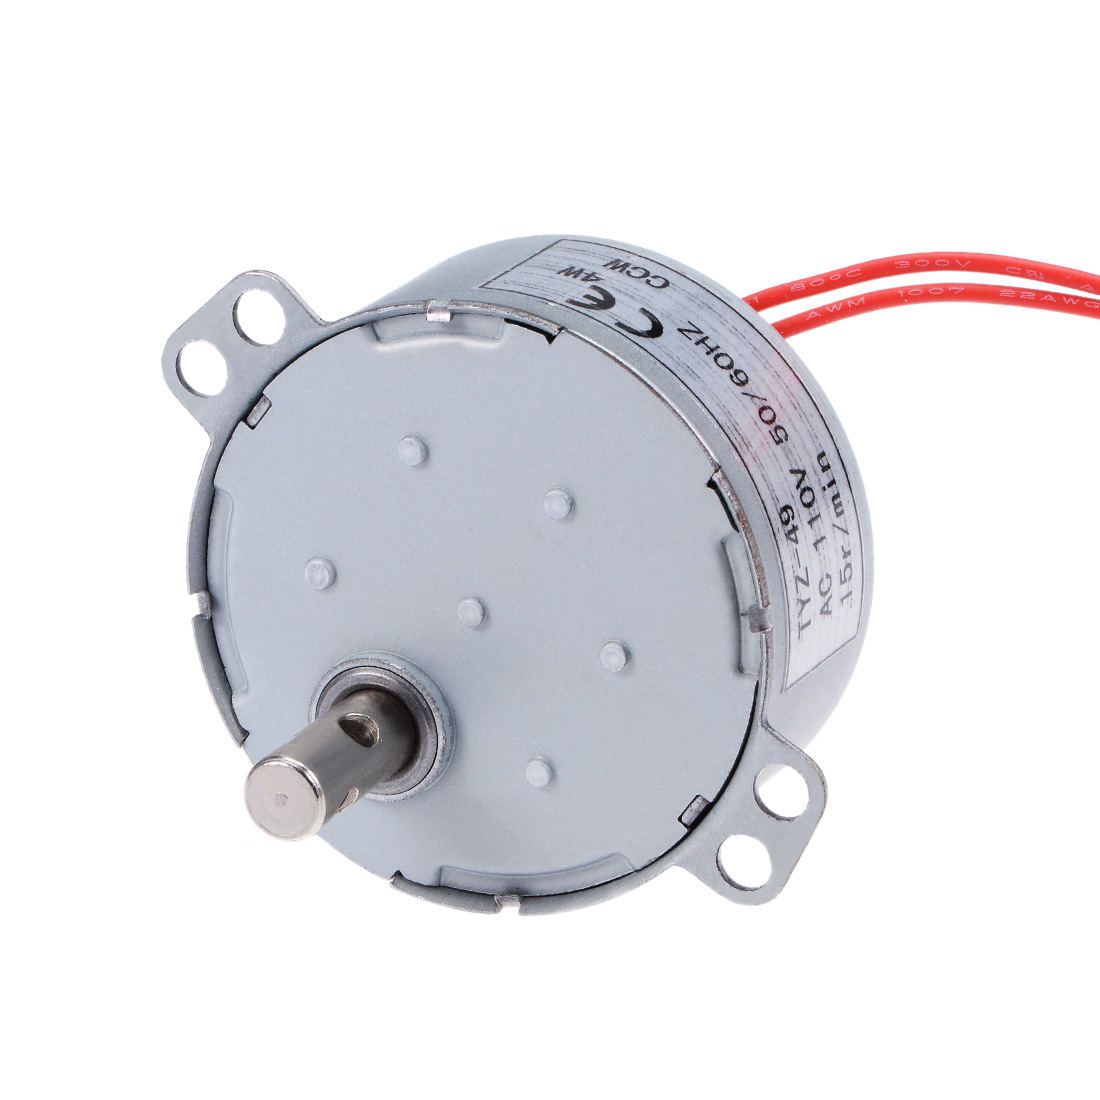 110V 50/60Hz 15RPM CCW AC Synchronous Motor Turntable Gear Box for Microwave Oven